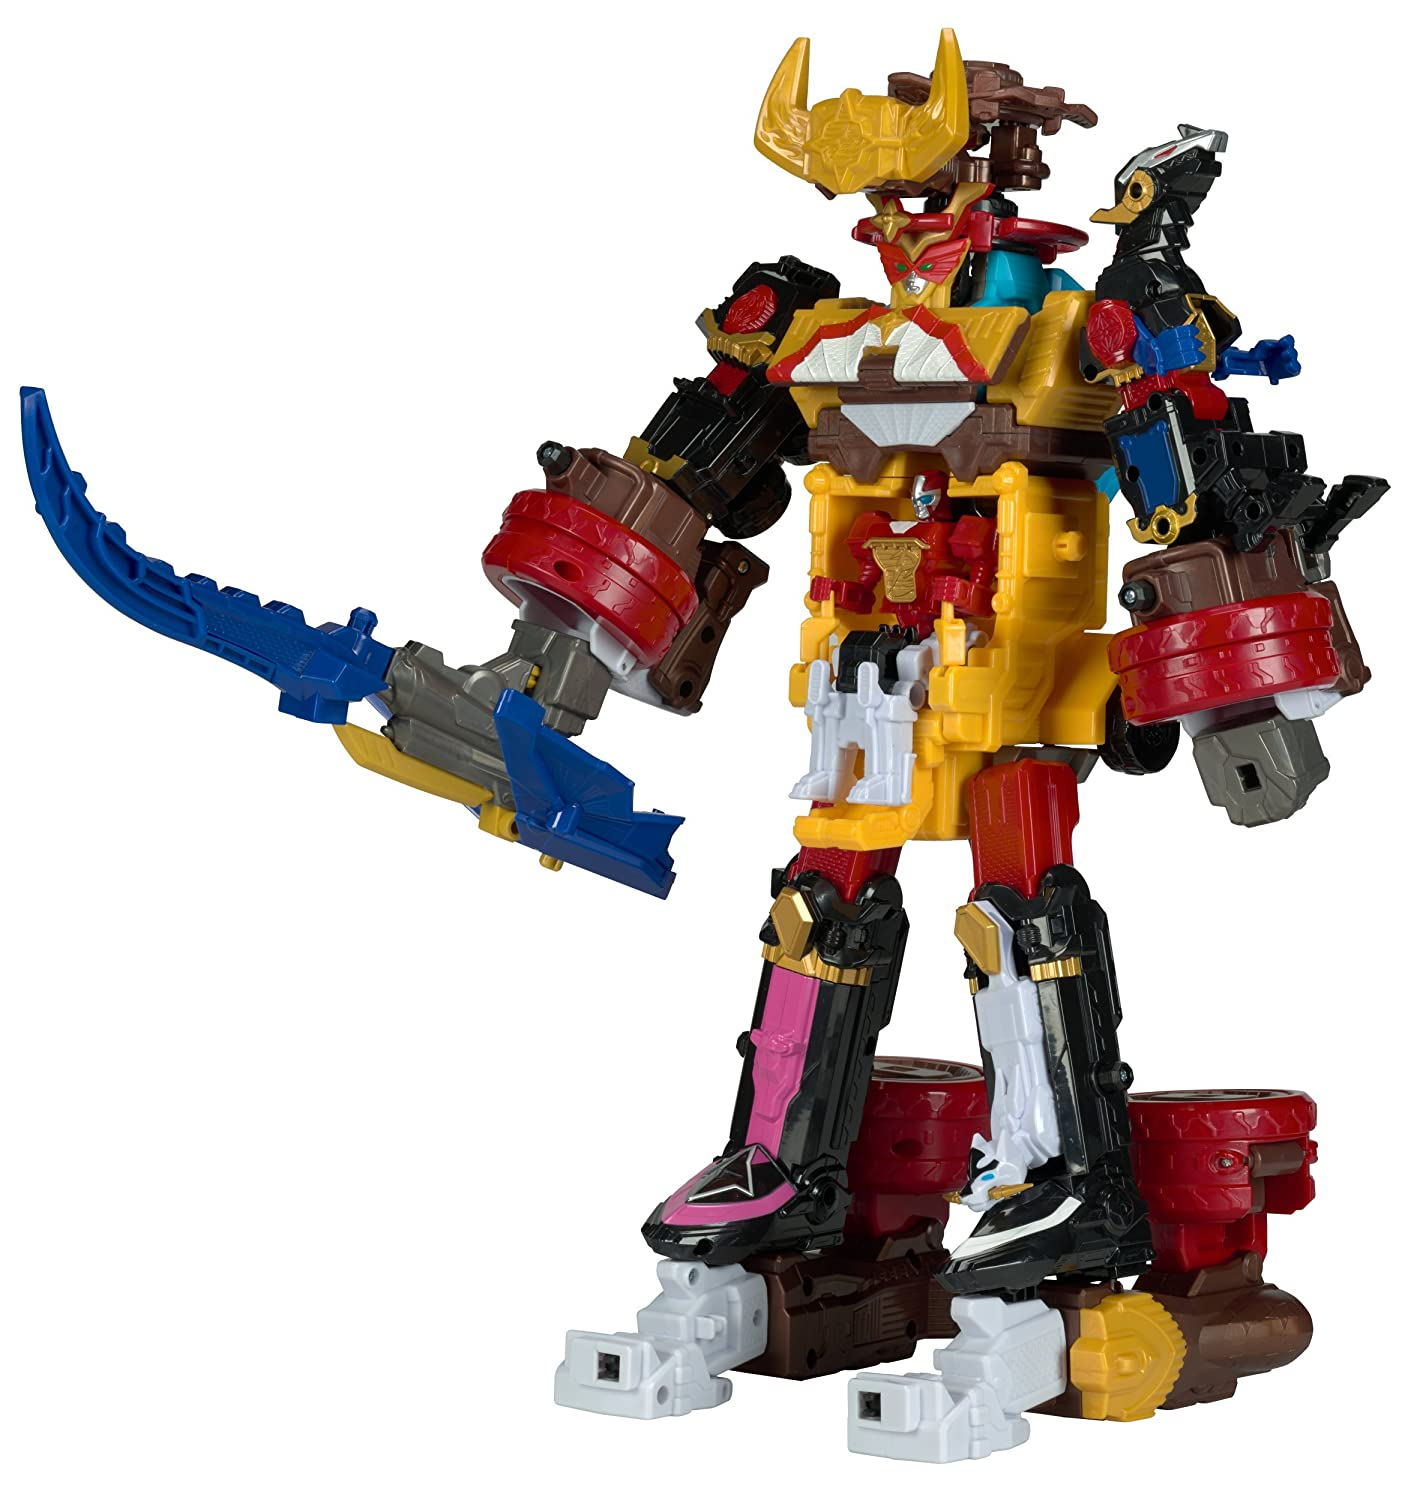 Amazon.com: Power Rangers Ninja Steel Megazord Figura de ...